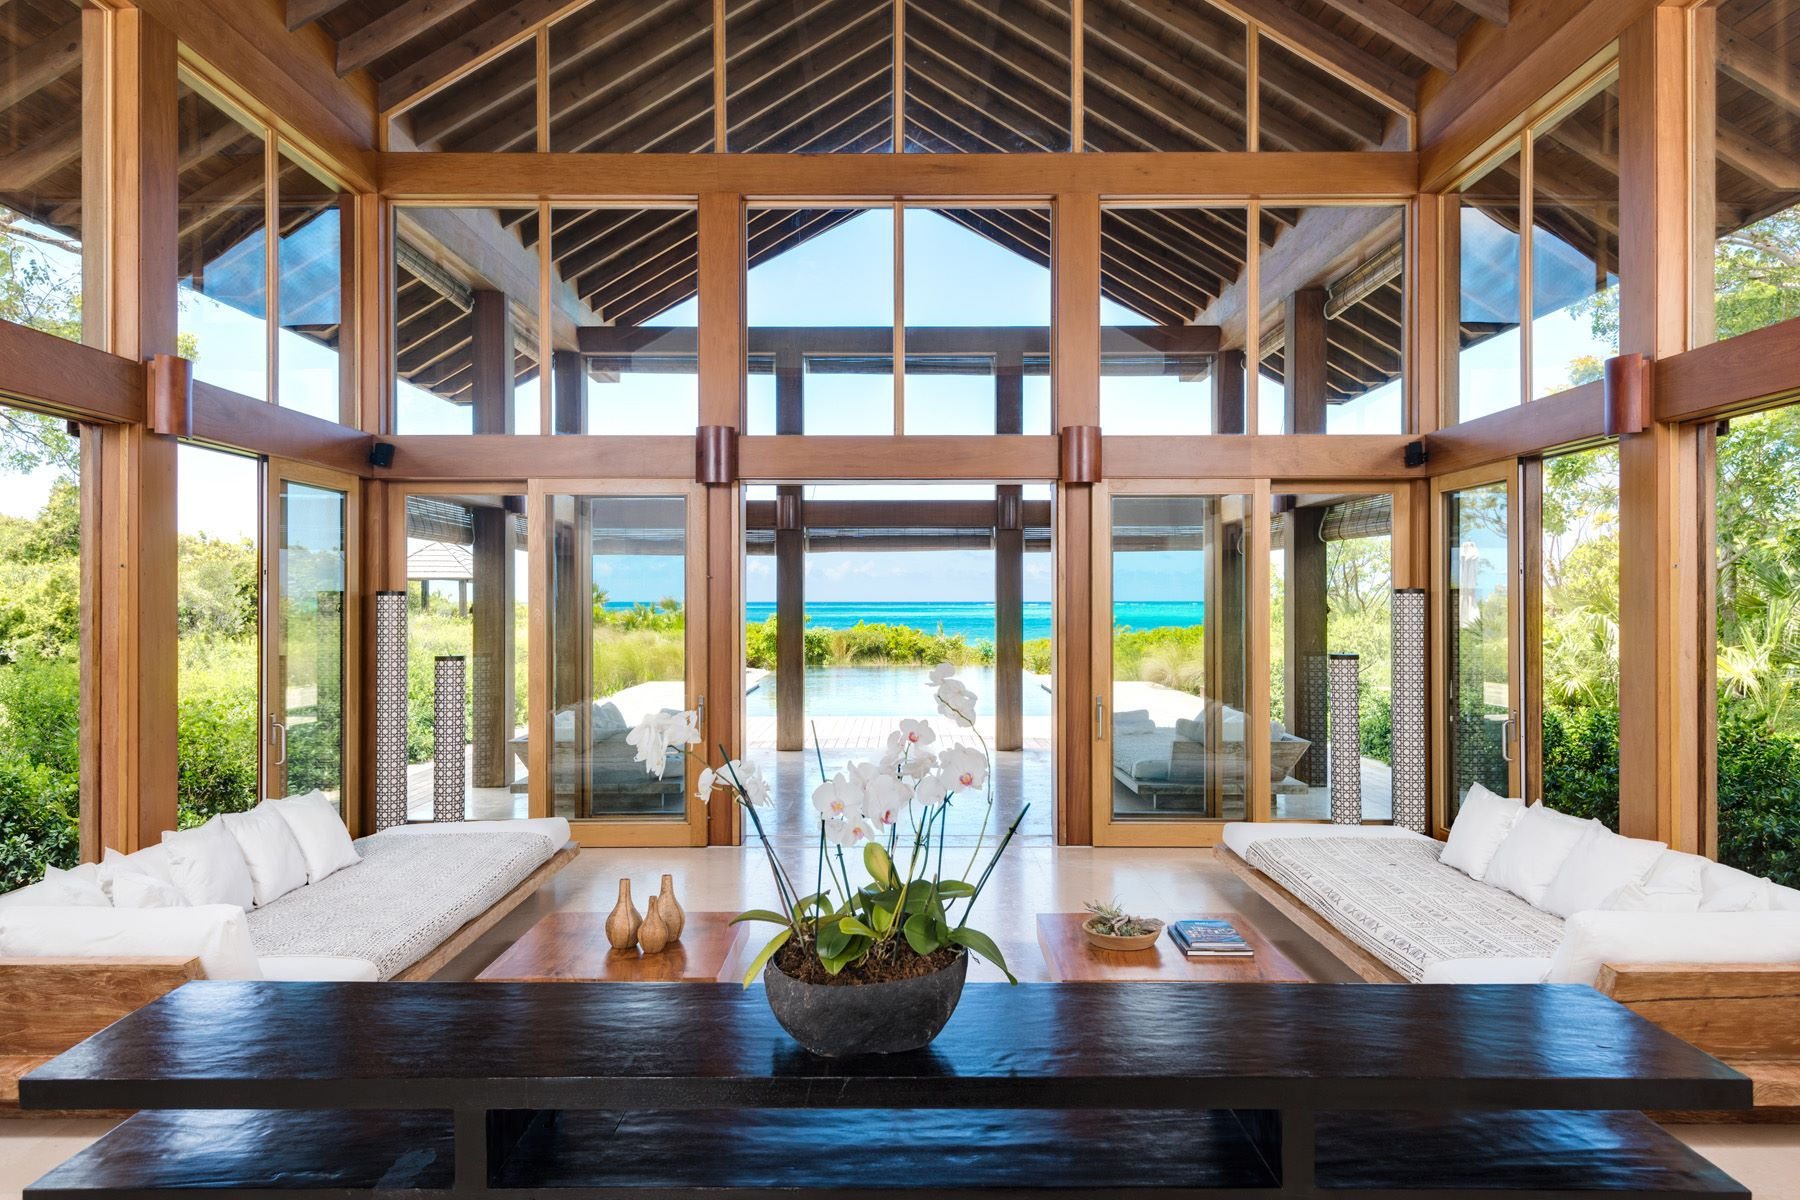 Additional photo for property listing at Point House Beachfront Estate 鹦鹉湾, 鹦鹉湖 TCI 特克斯和凯科斯群岛